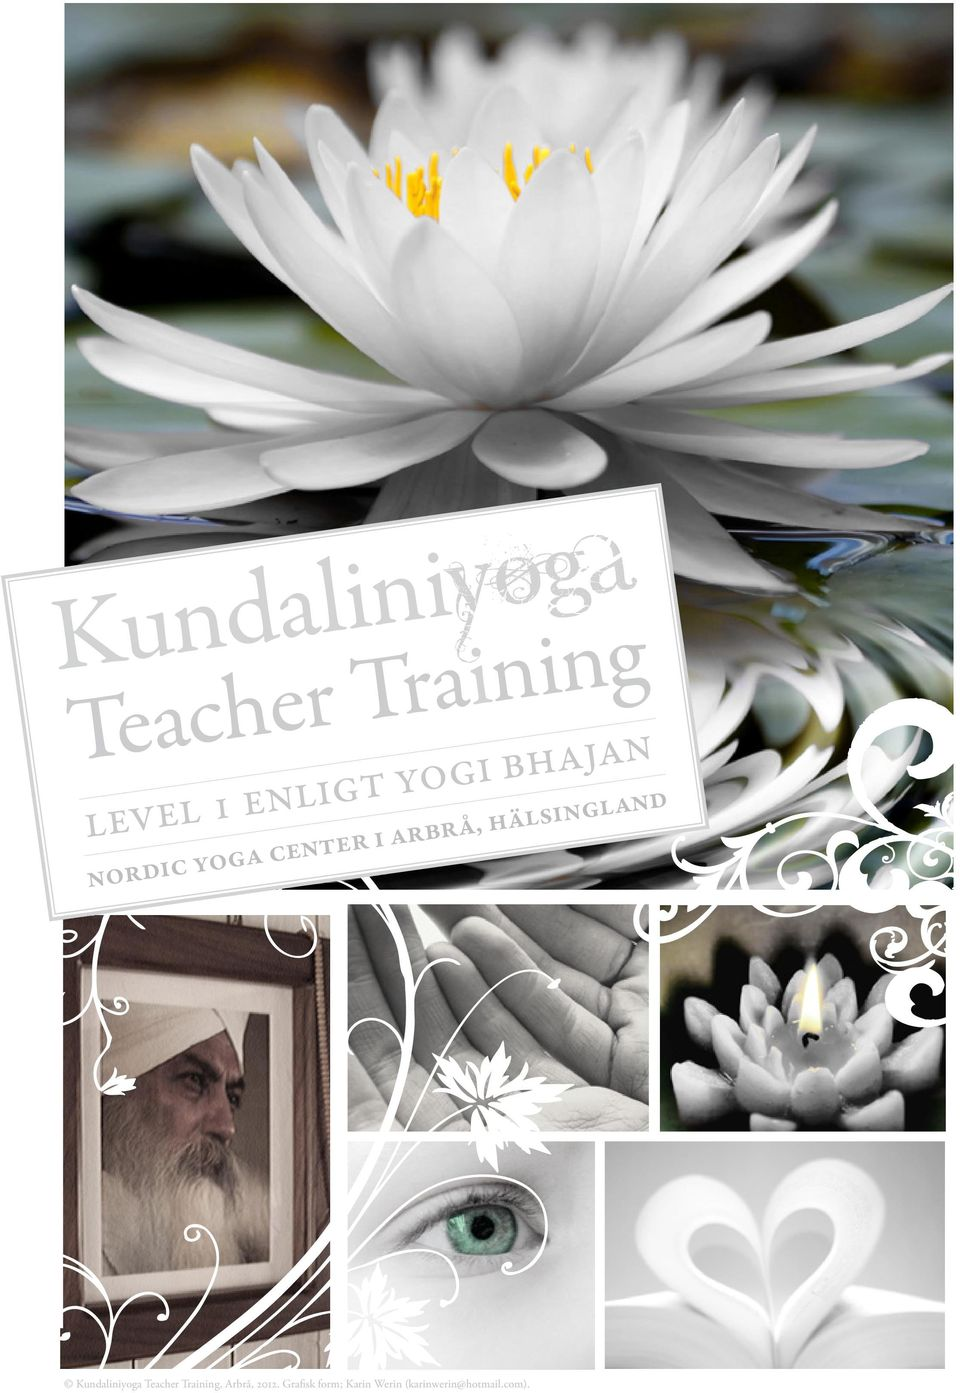 Kundaliniyoga Teacher Training, Arbrå,